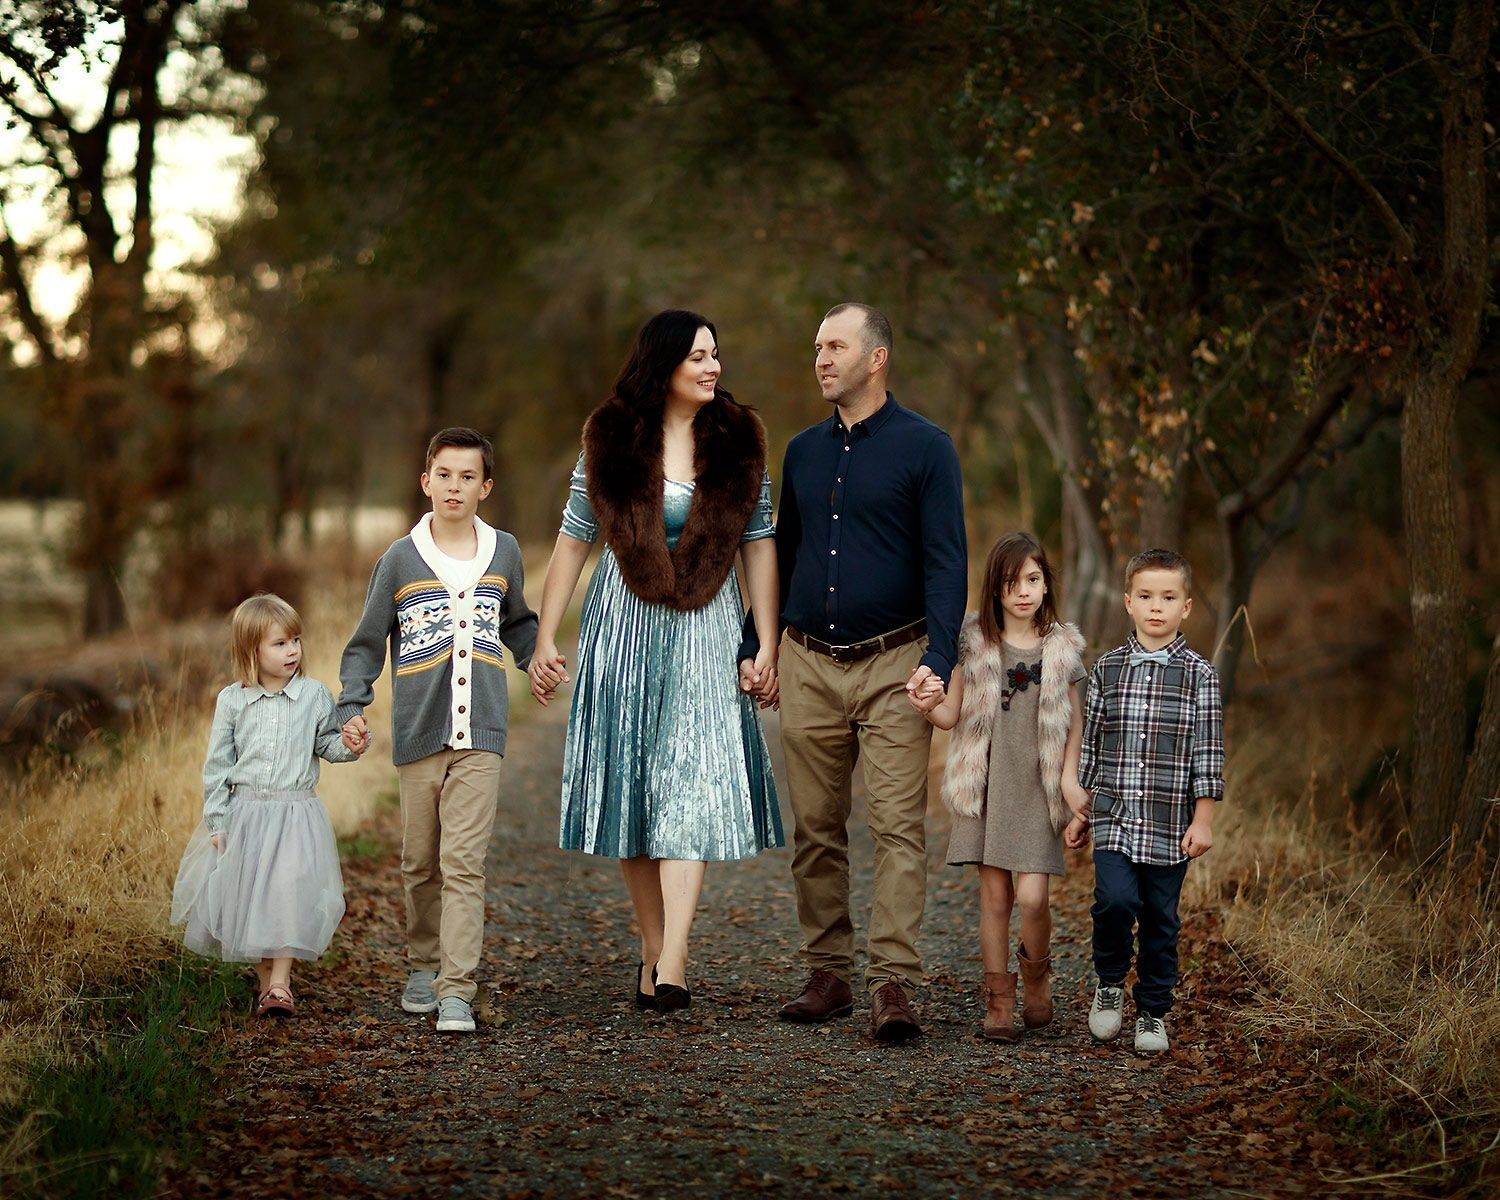 Family Of Three Lifestyle Photography Ideas Family Posing Ideas And Outfits Ideas For Photography Poses Family Family Pictures Outside Outdoor Family Pictures